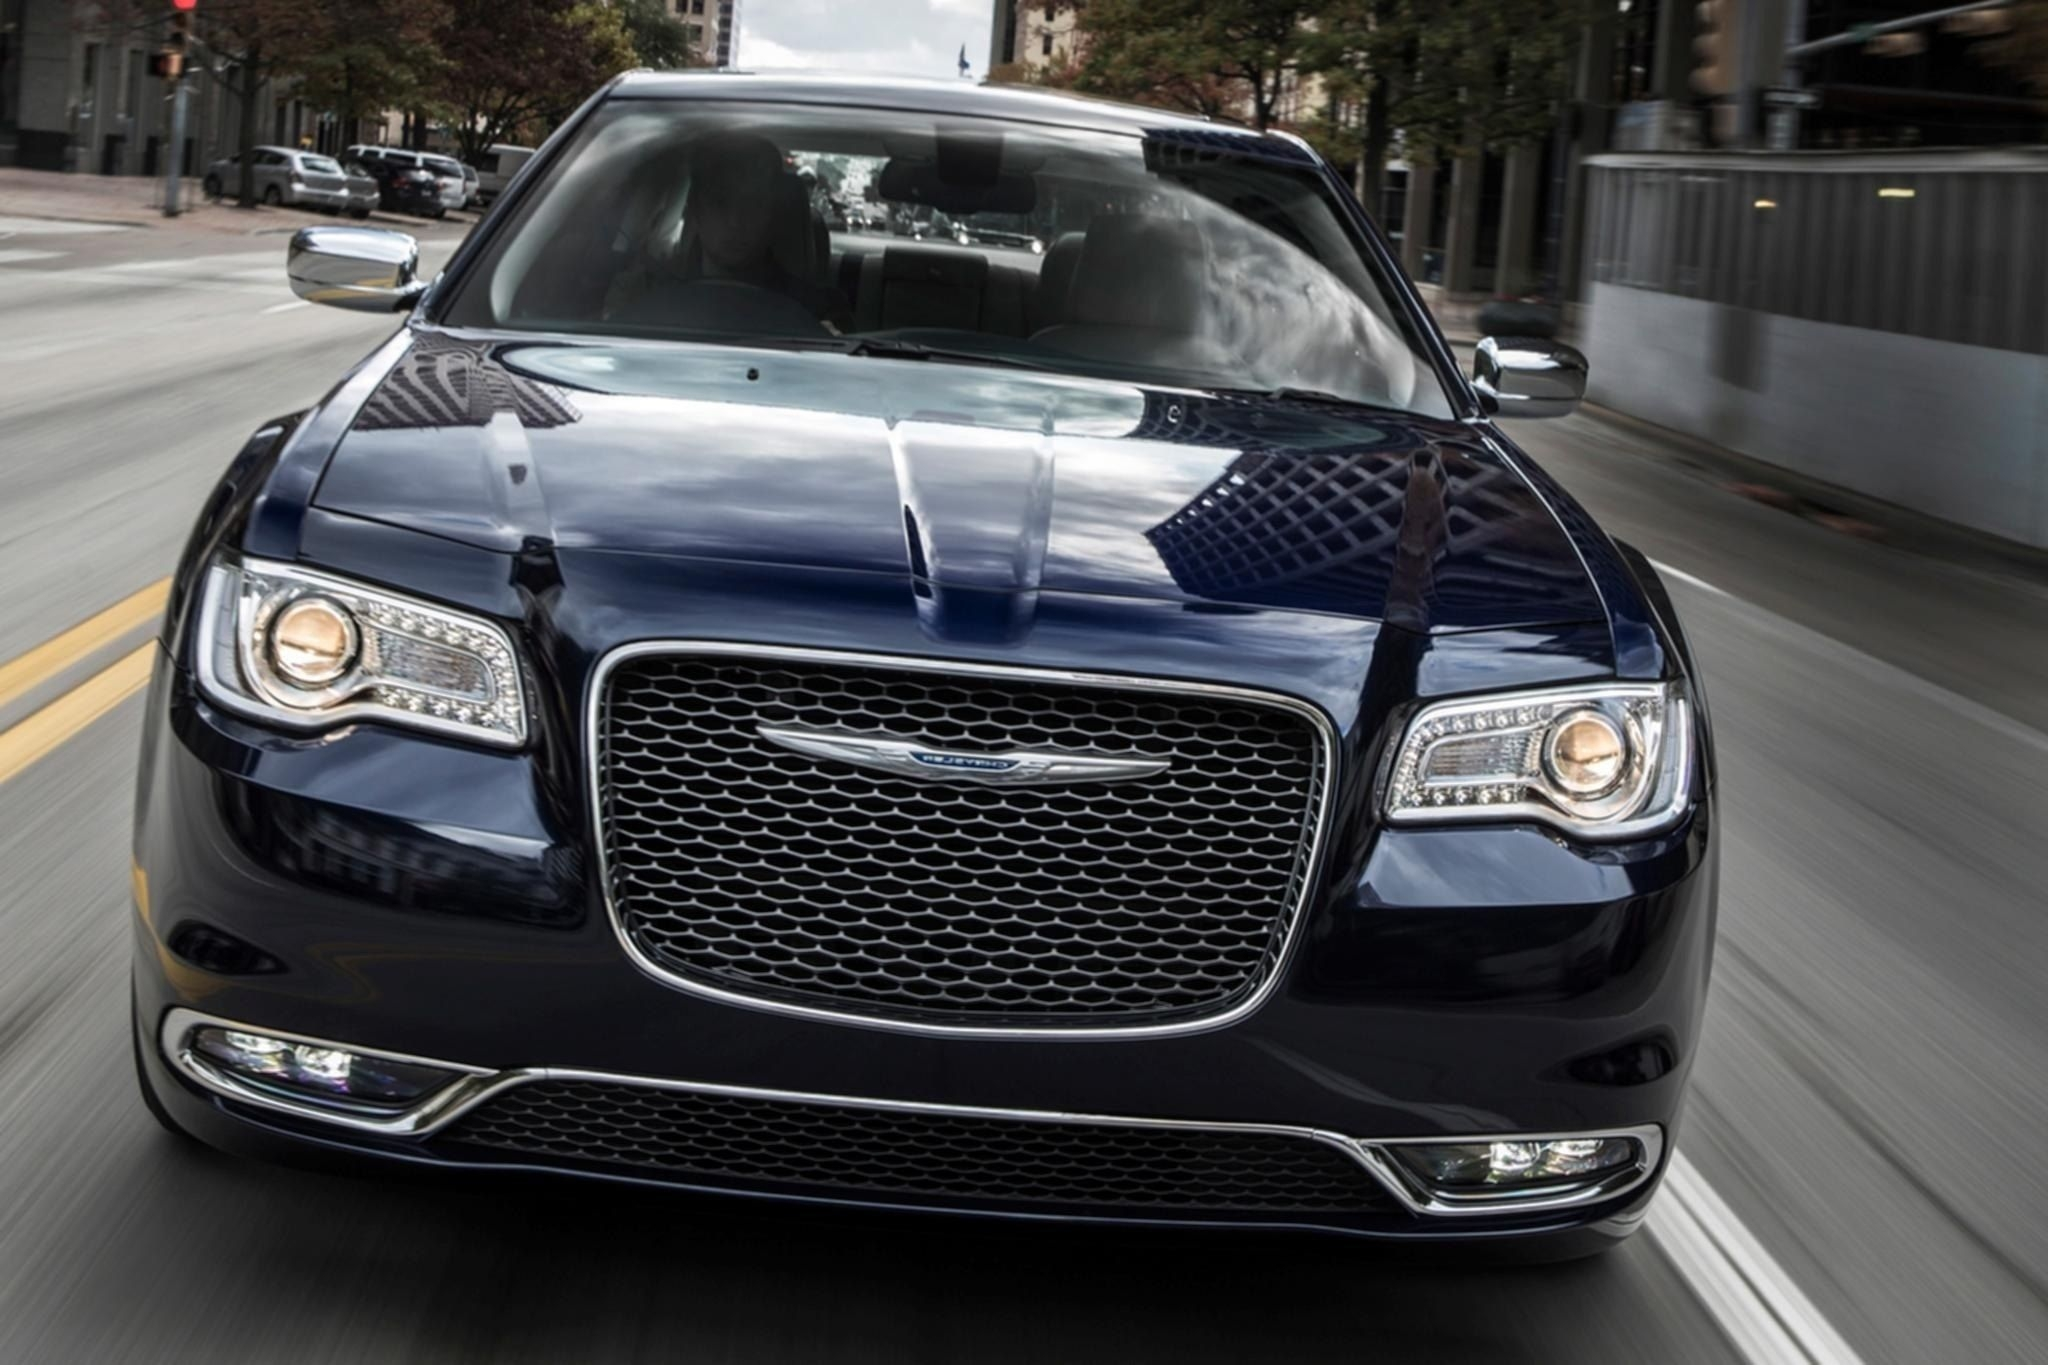 85 The Best 2020 Chrysler 100 Pricing